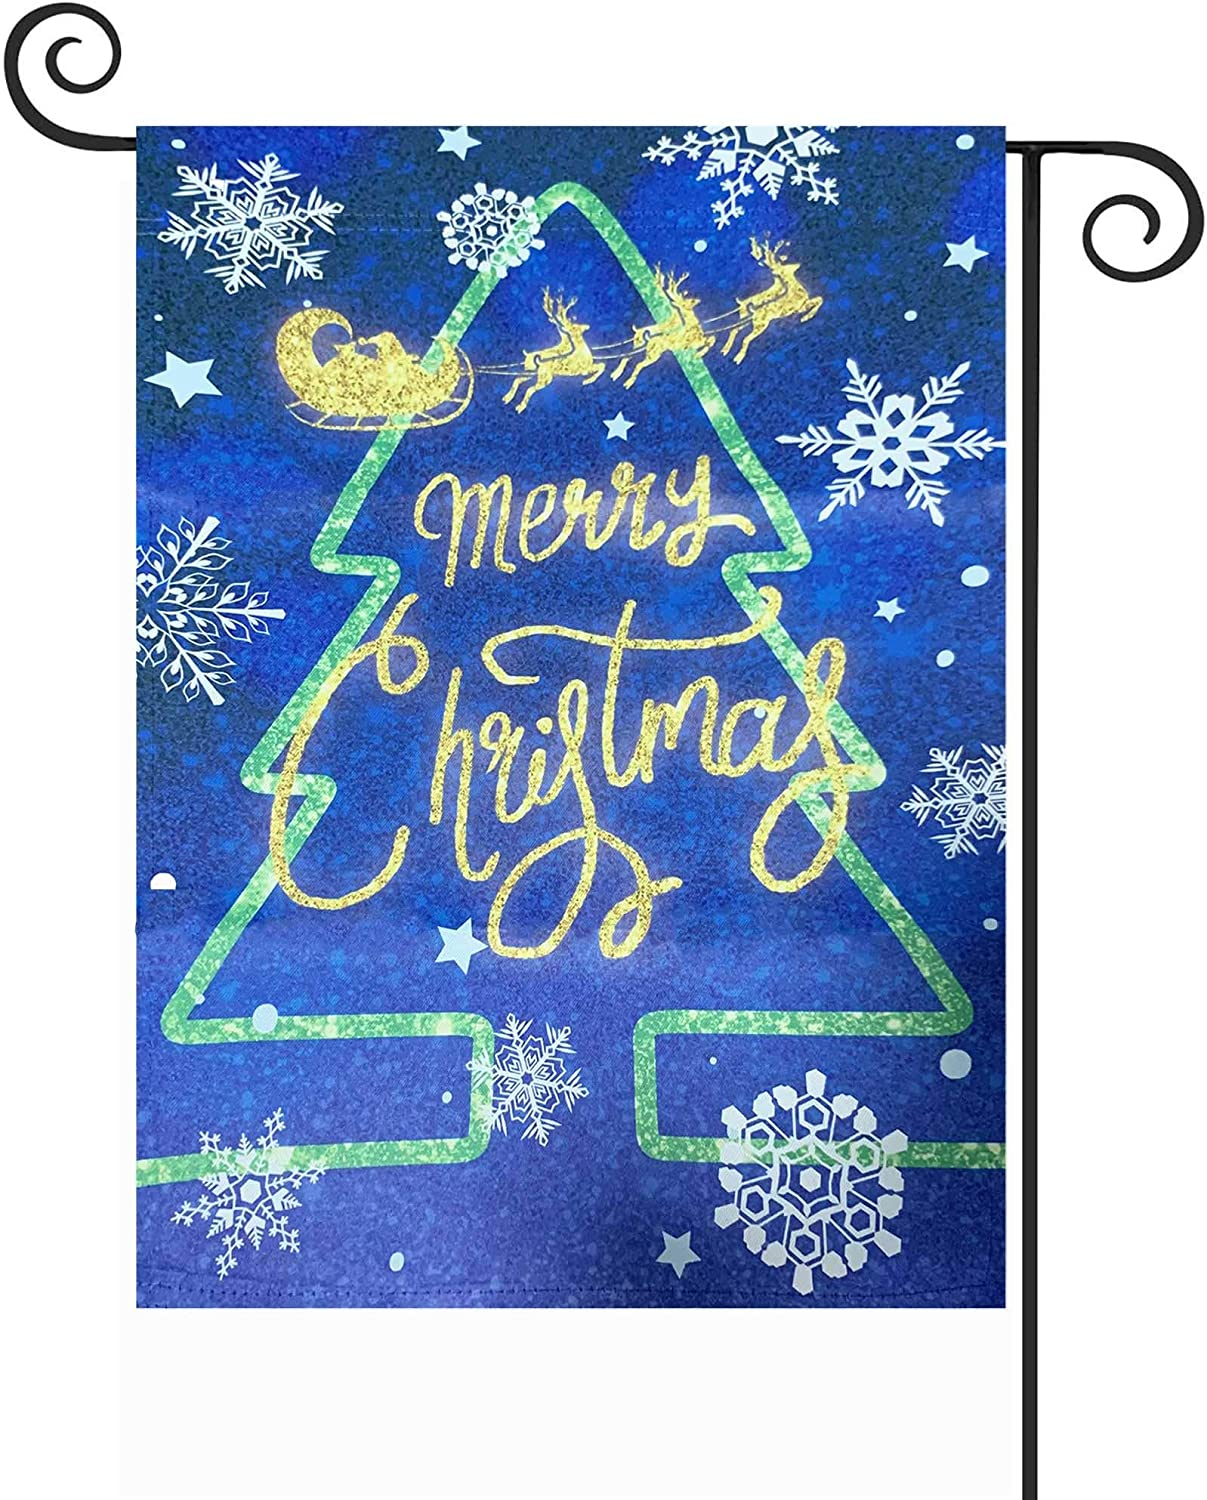 """TOPFLAGS Merry Christmas Tree Reindeer Snowflakes Garden Yard Flag 12.5""""x 18"""" Double Sided Polyester Outdoor Indoor Xmas Decoration"""